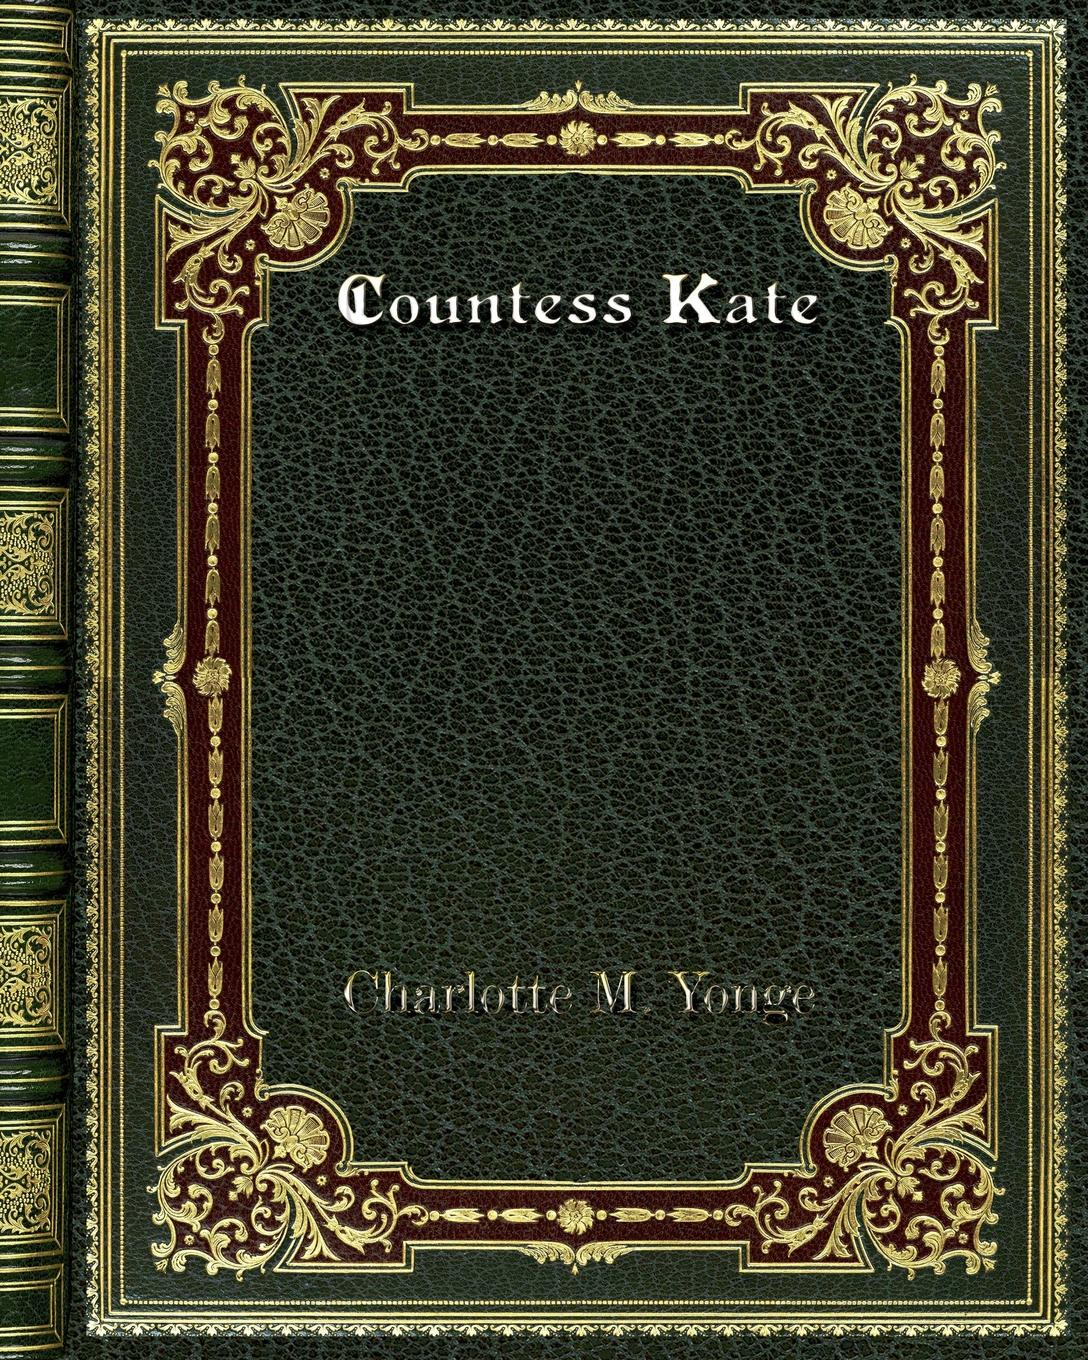 Charlotte M. Yonge Countess Kate